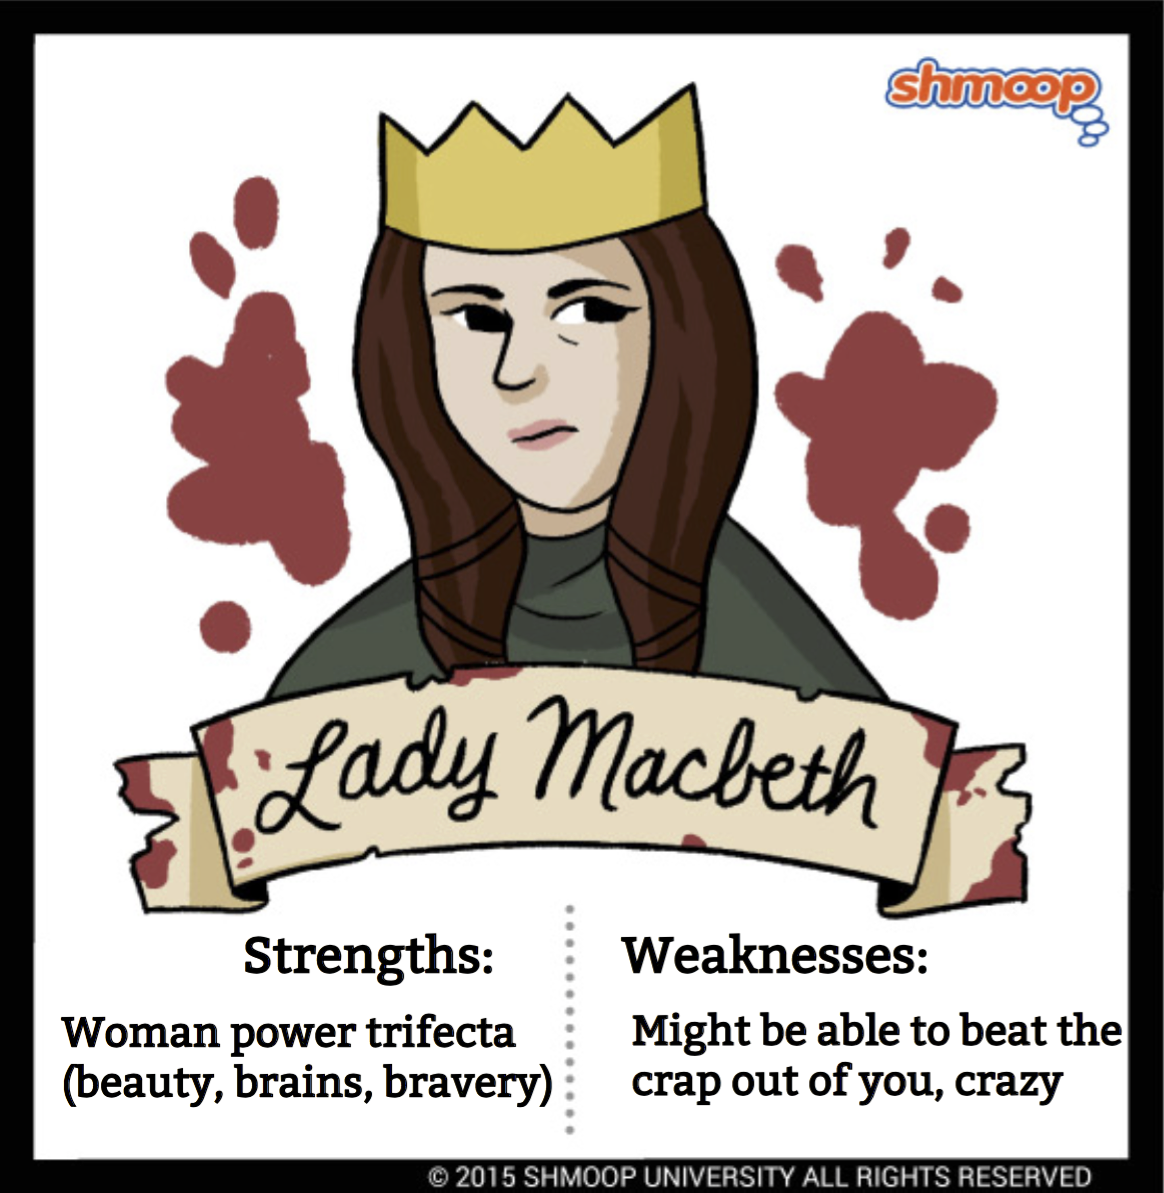 essays lady macbeth character analysis